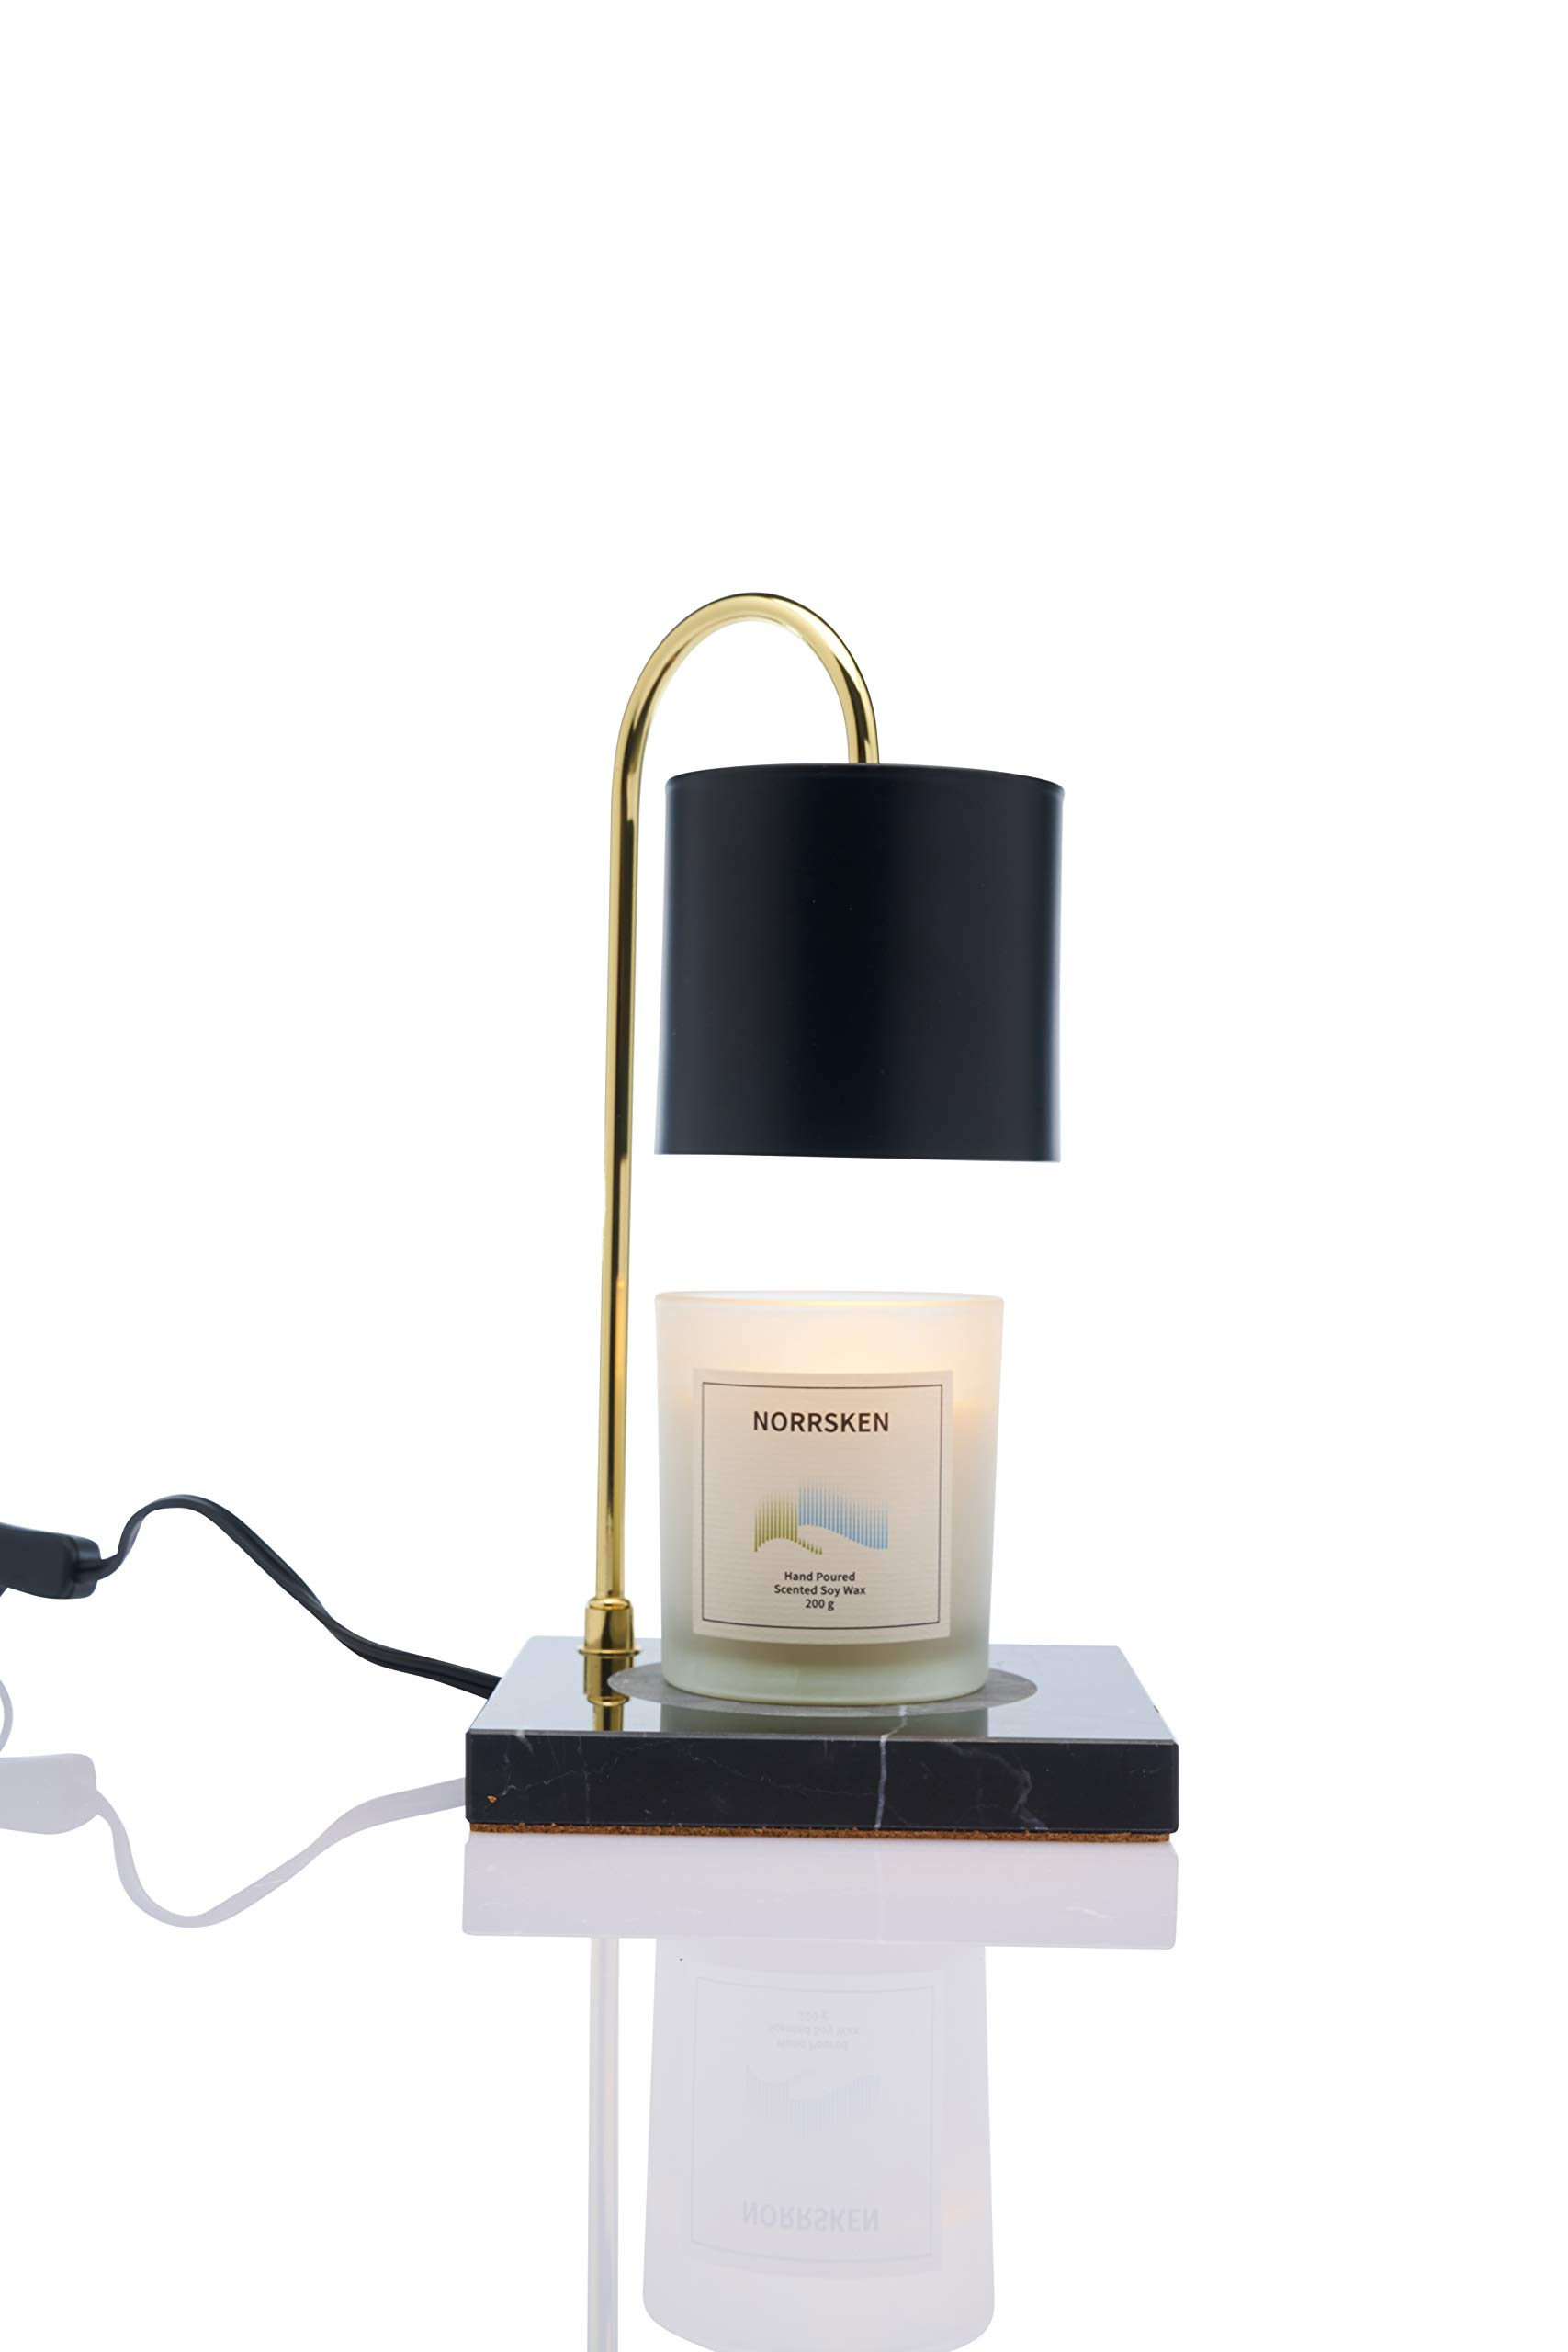 Vana Candles Candle Warmer Ljusvärmare Svart Marmor Modern Lamp Swedish Design - Black Marble Brushed Metal